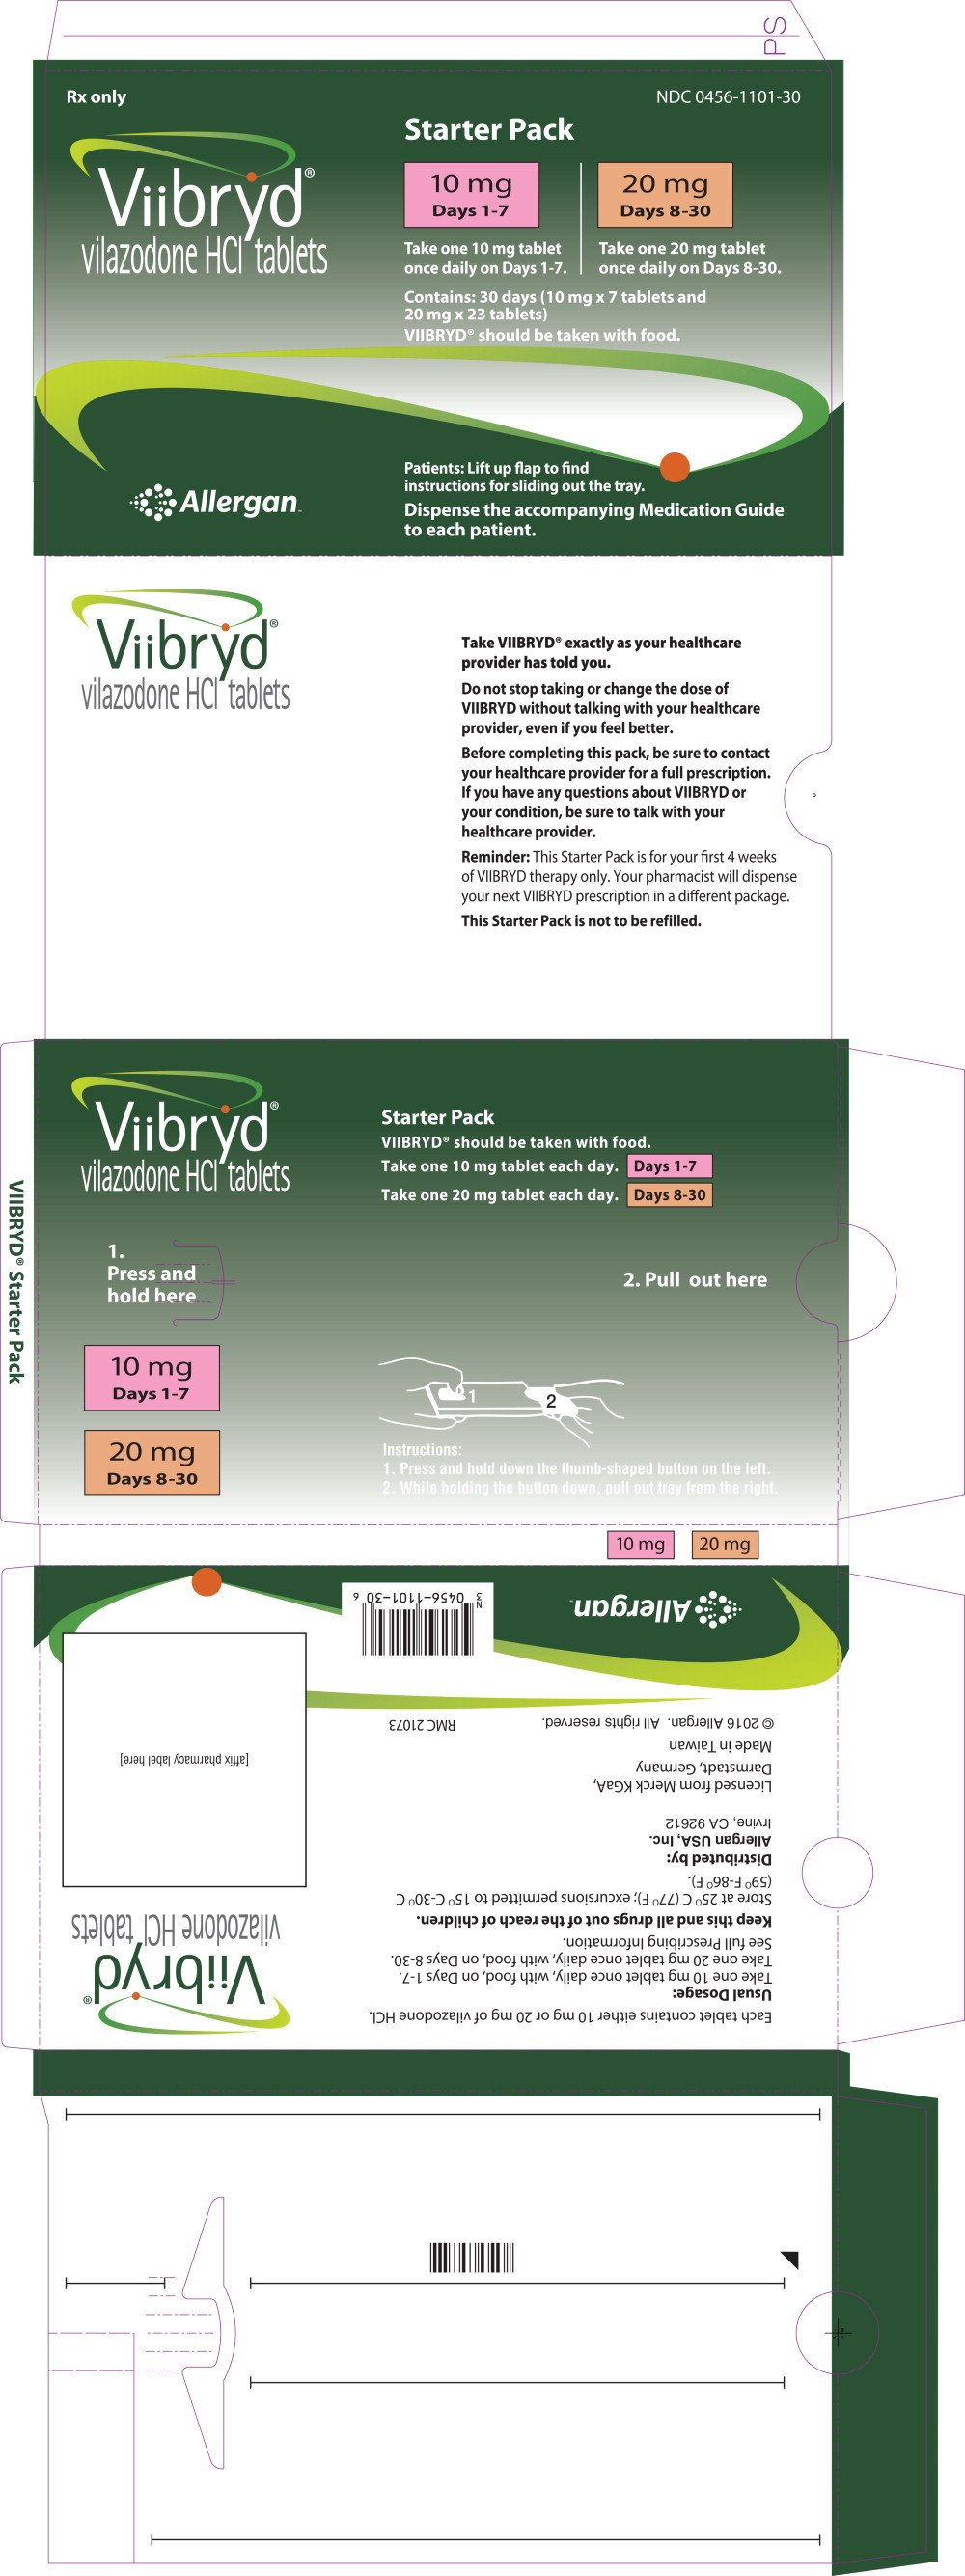 Viibryd - FDA prescribing information side effects and uses